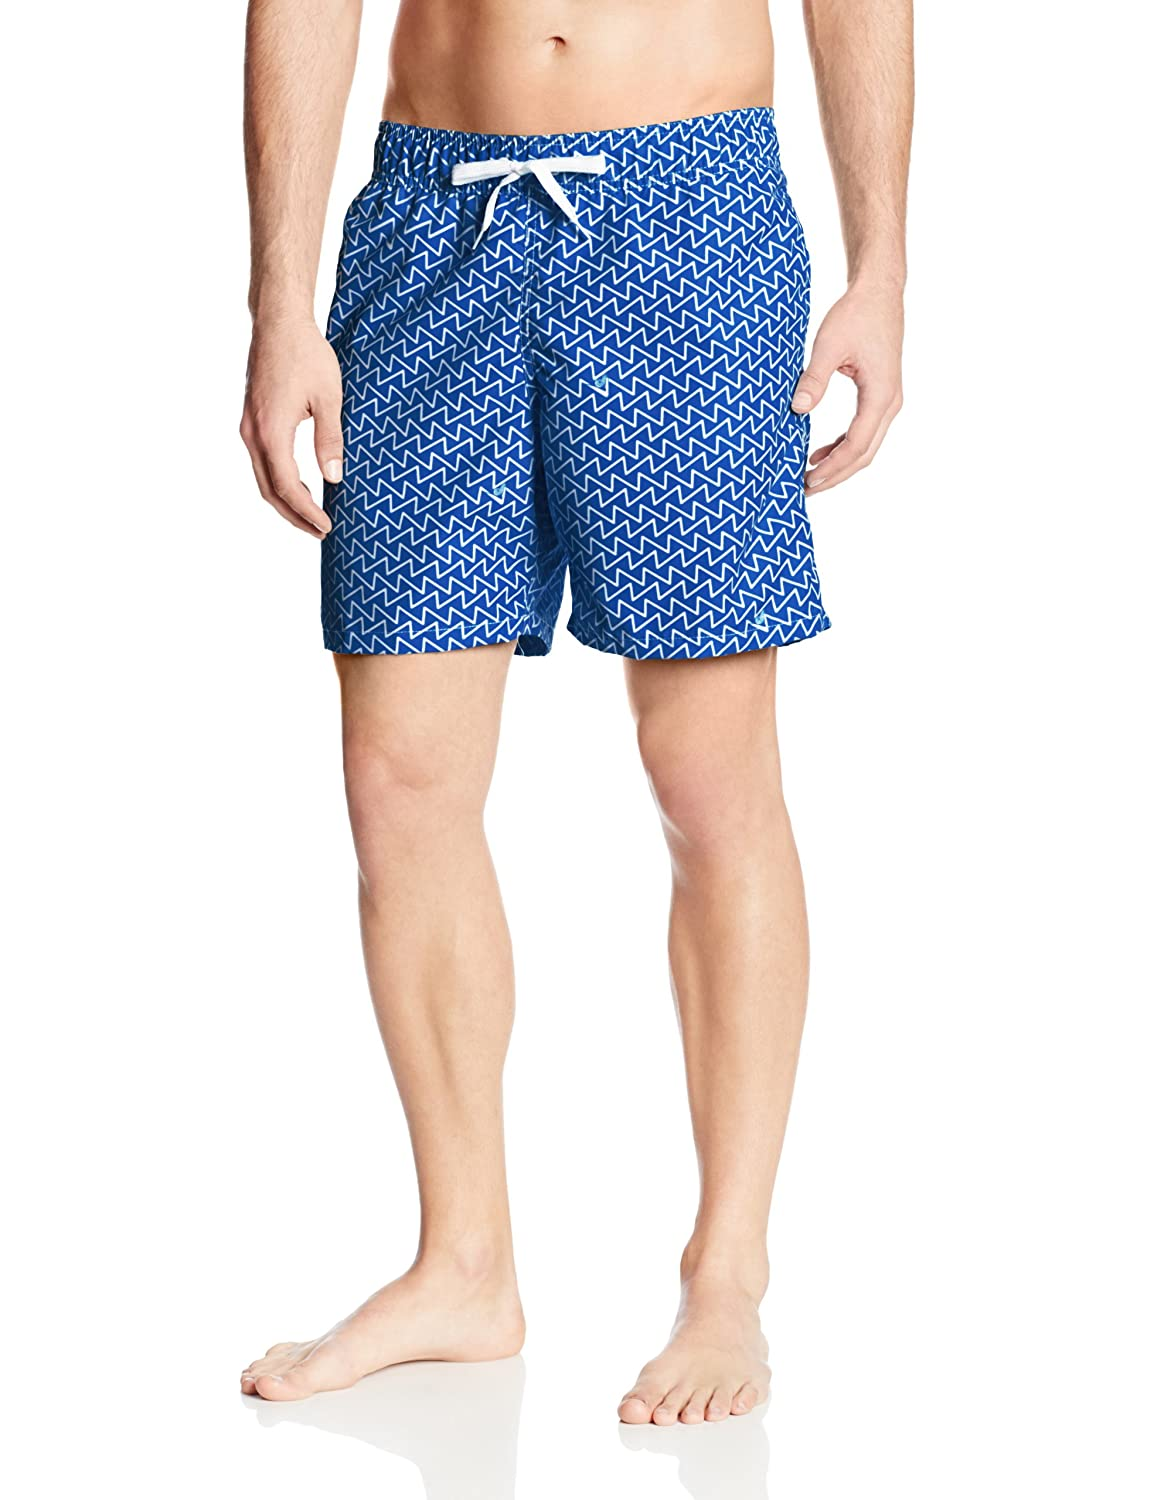 Kanu Surf Men's Monte Carlo Swim Trunk Kanu Surf Men' s Swimwear 1461